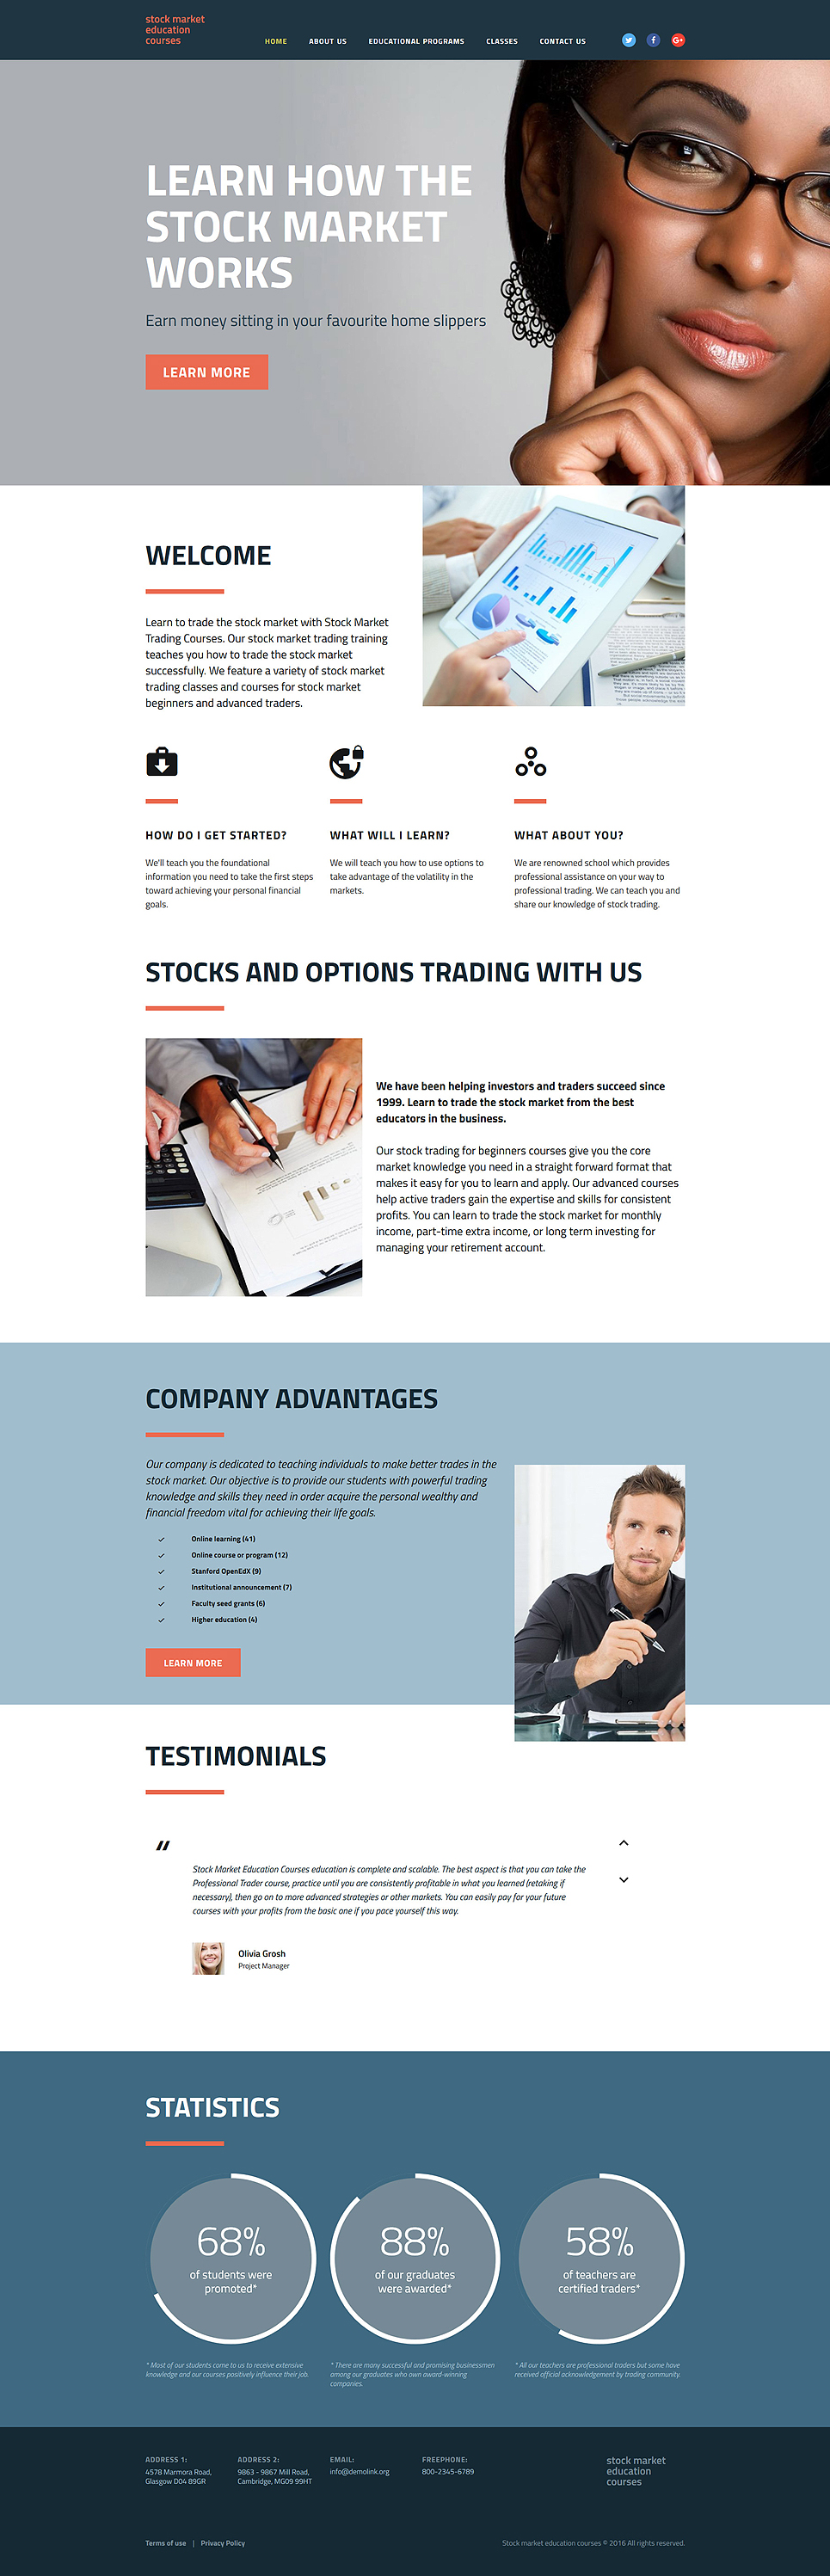 Stock Market Education Courses template illustration image